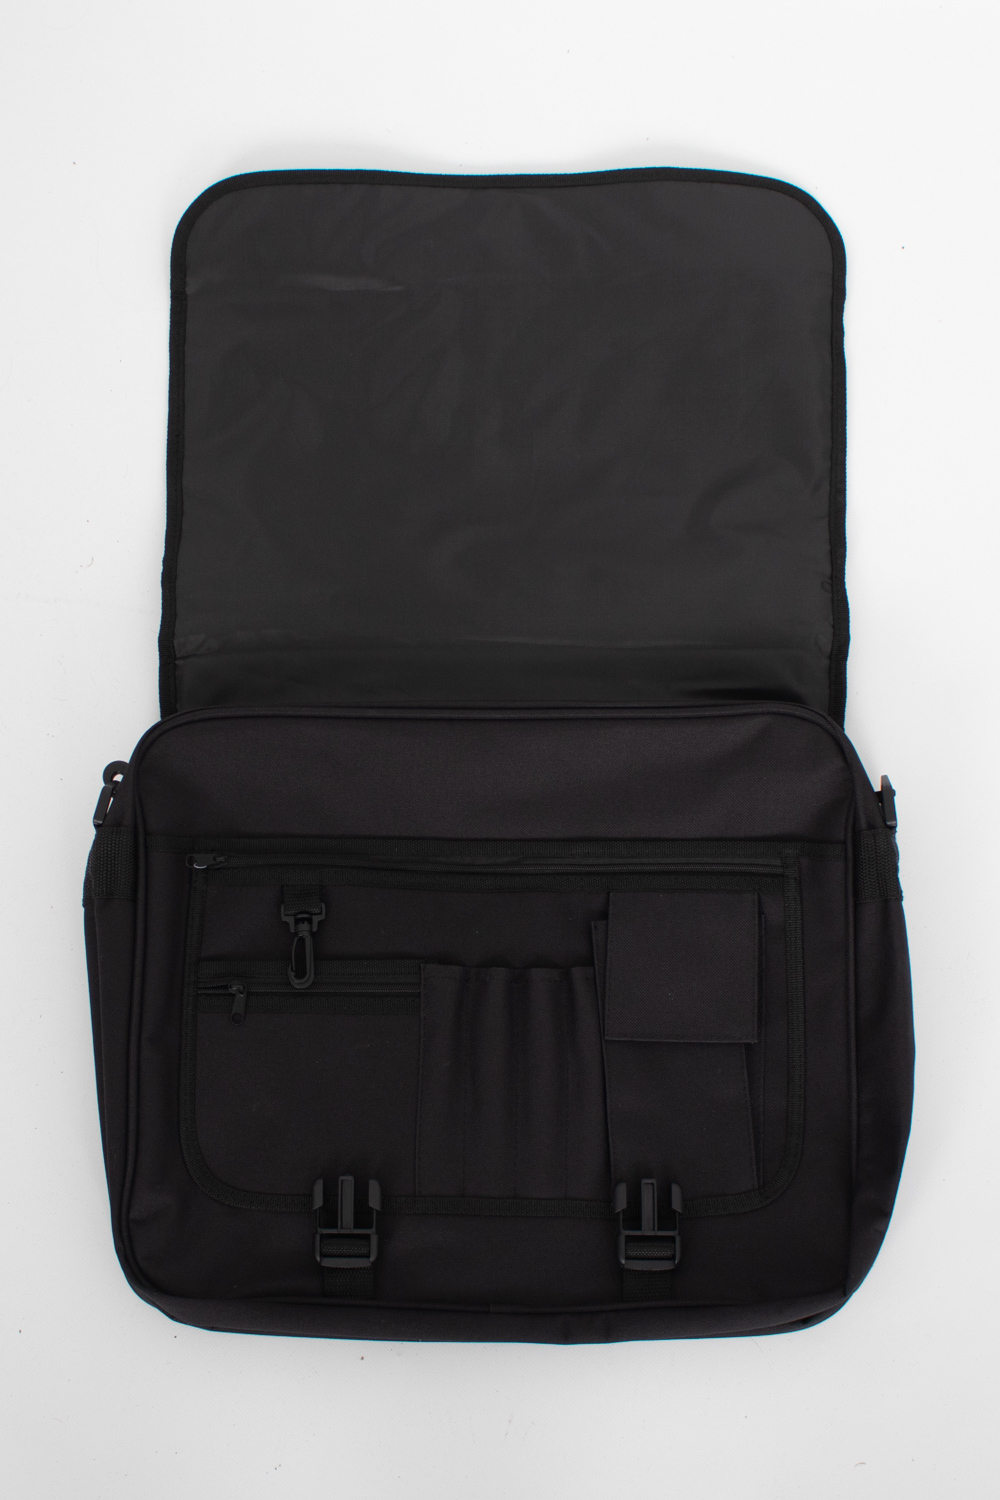 EN-Kitlocker Team White Satchel Bag